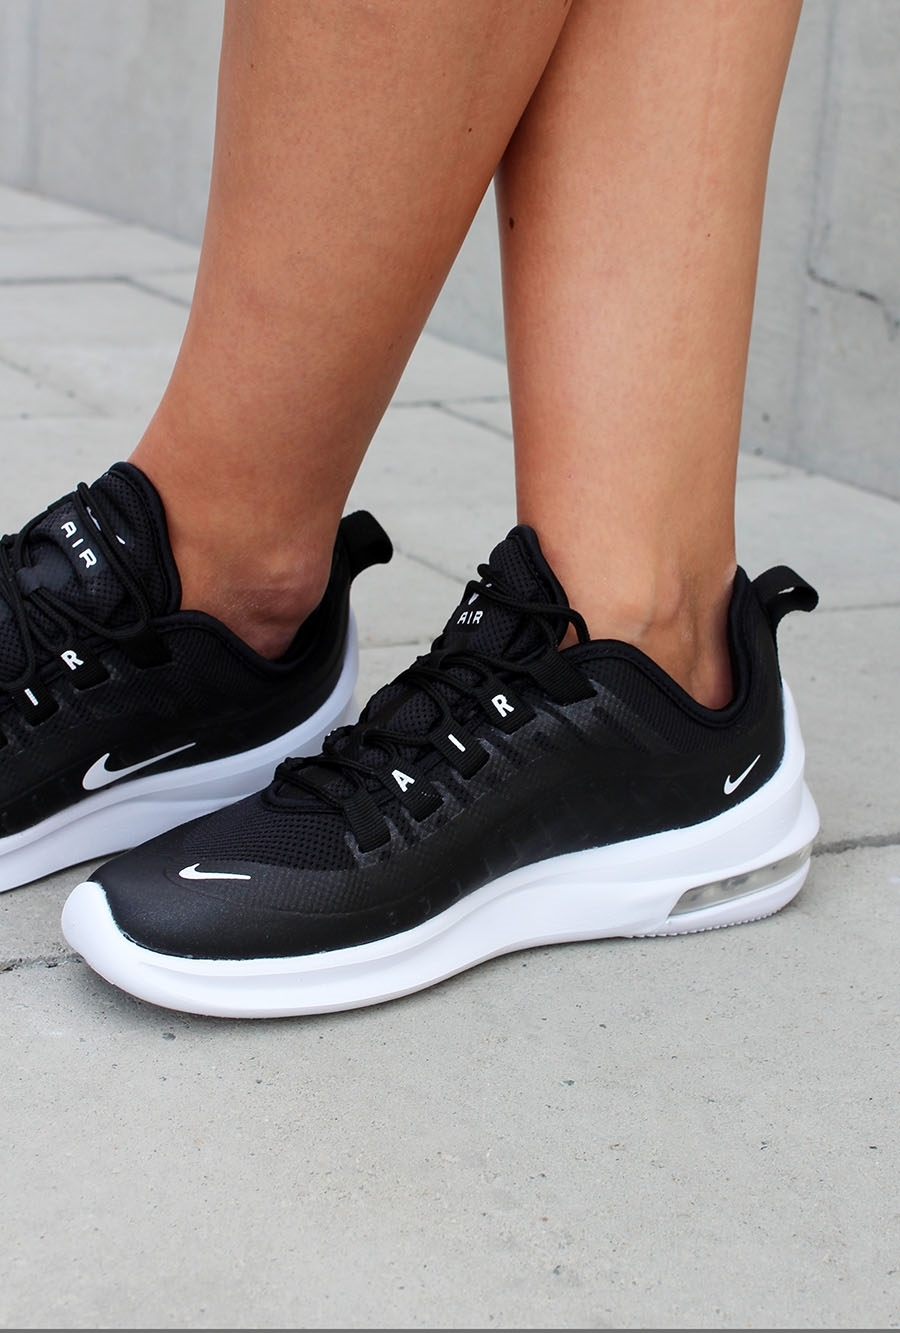 check out dbe0f 1670c ... Bilde av Nike WMNS NIKE AIR MAX AXIS AA2168-002 ...